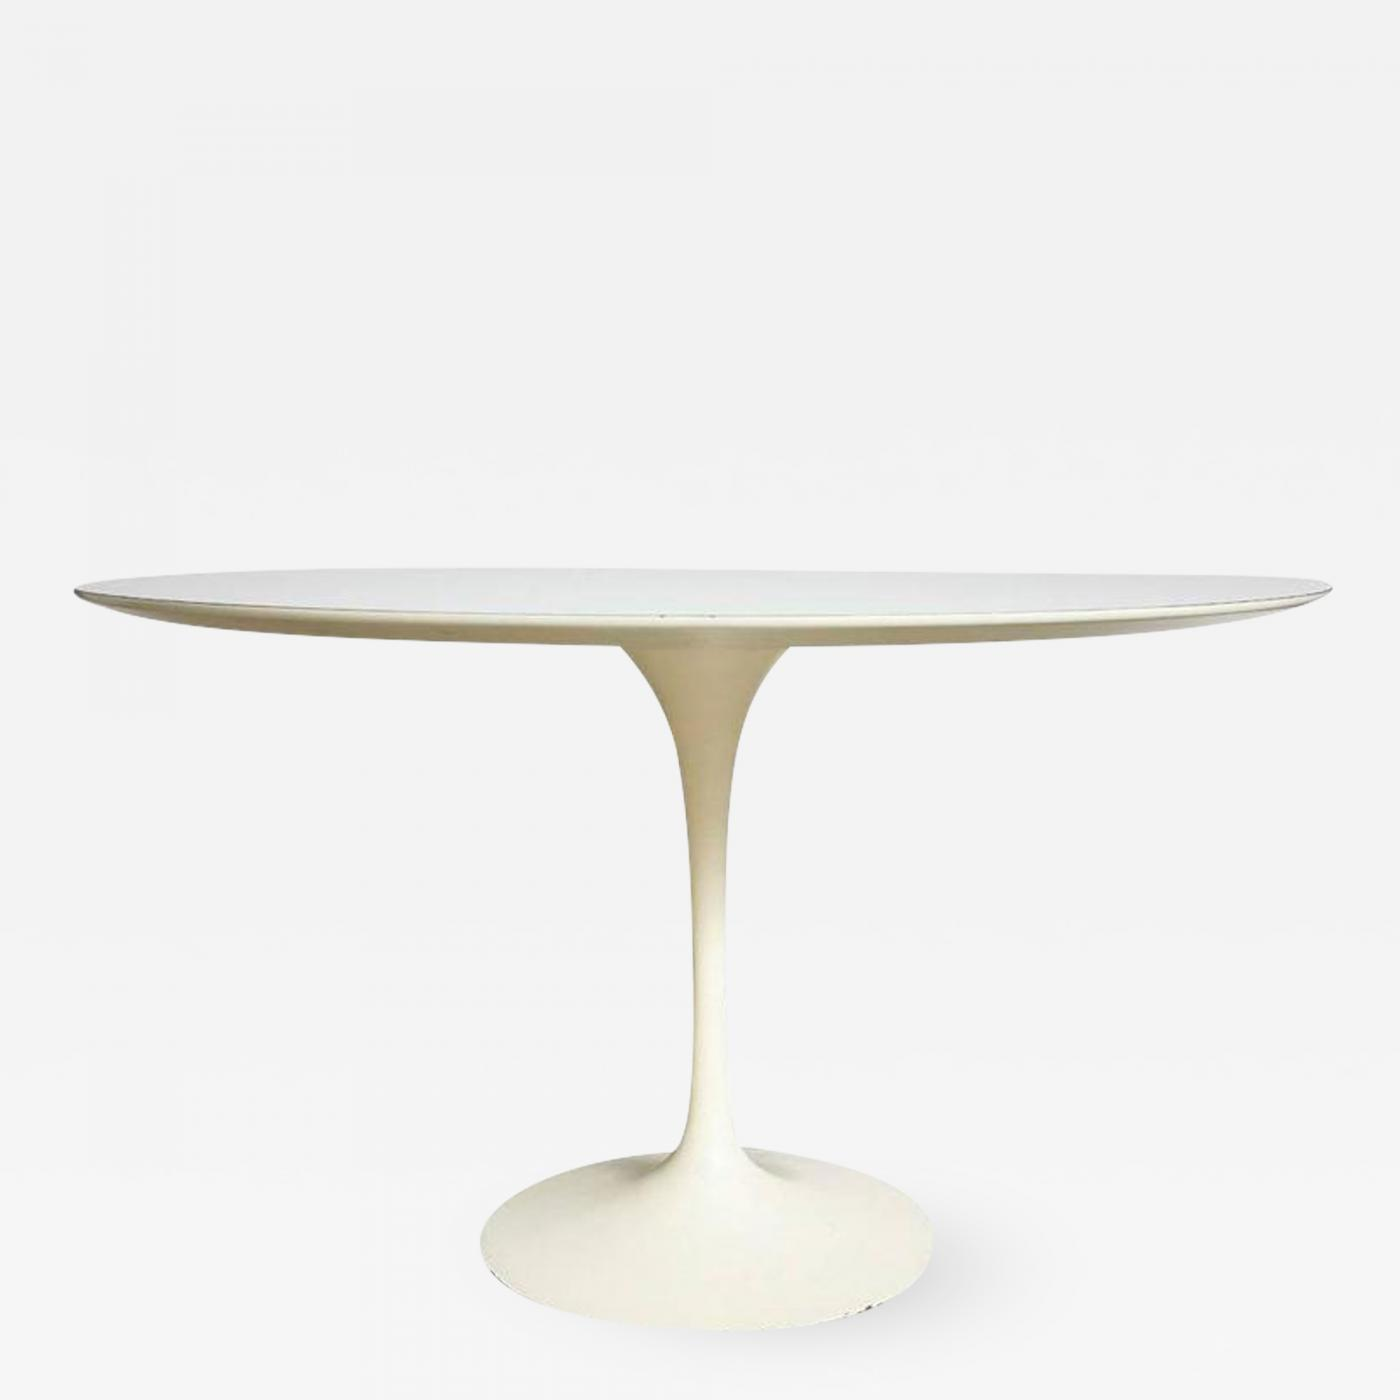 Eero Saarinen Saarinen Knoll Dining Table White Laminate USA S - Saarinen table white laminate